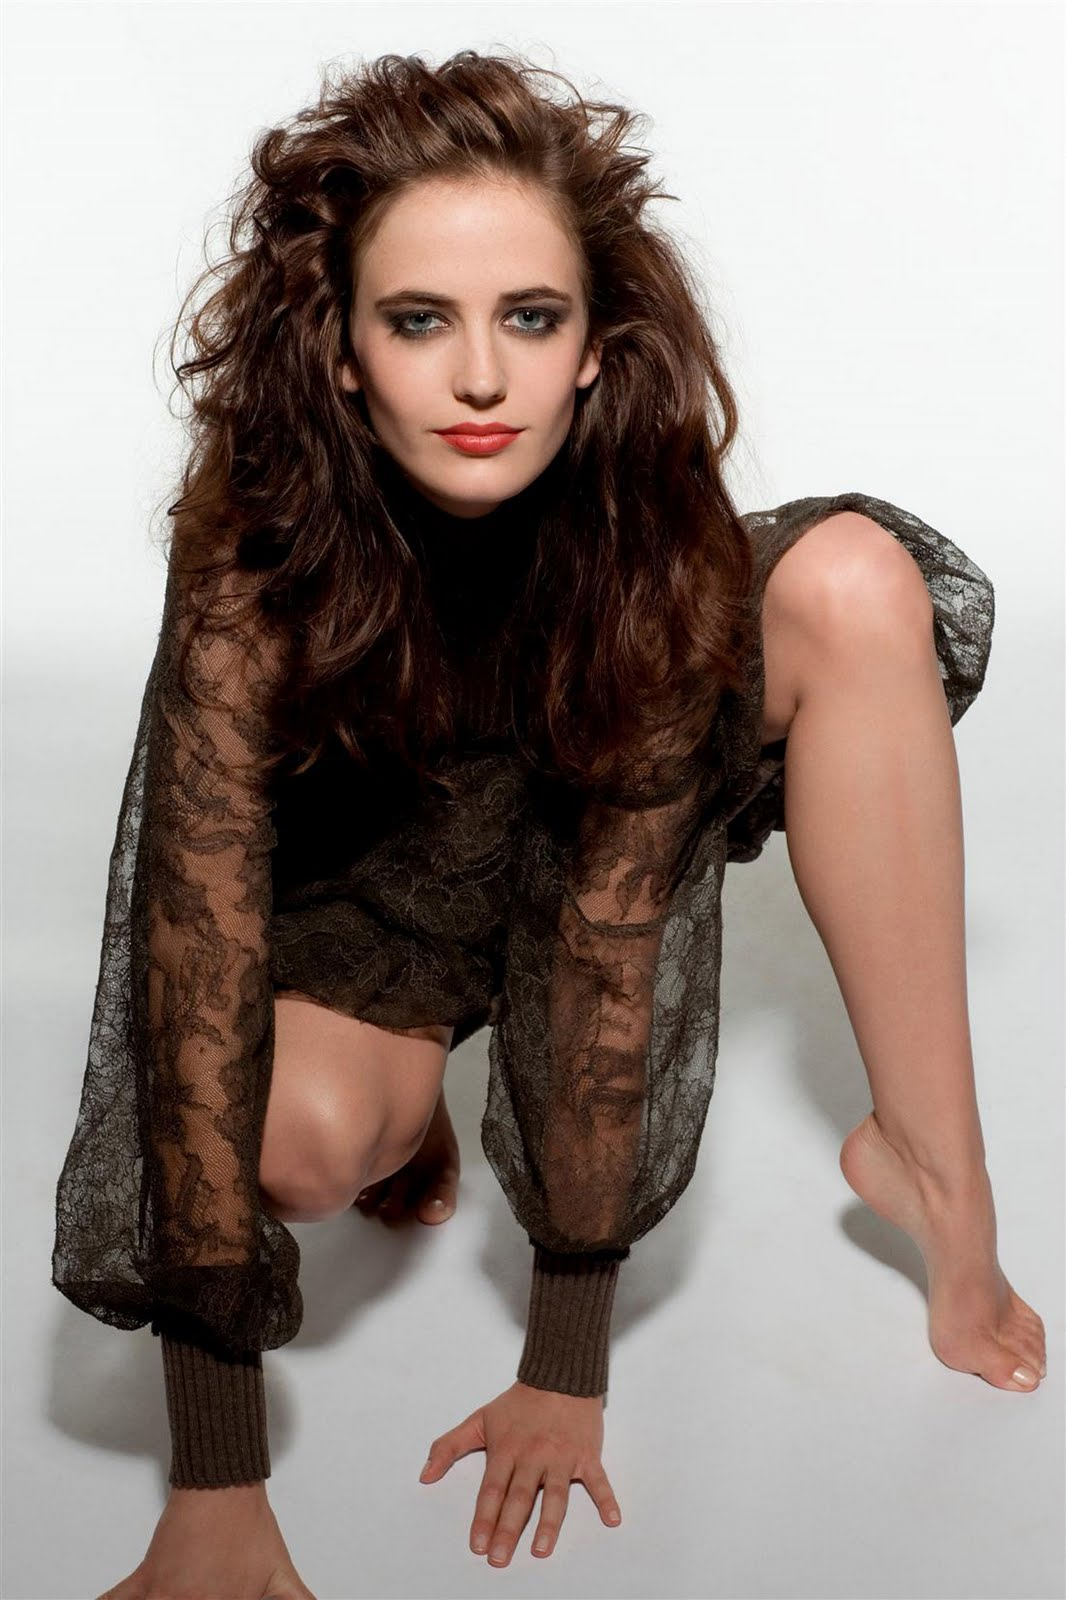 Eva Green is a mavelous French actress, known for her role in such ... Eva Green